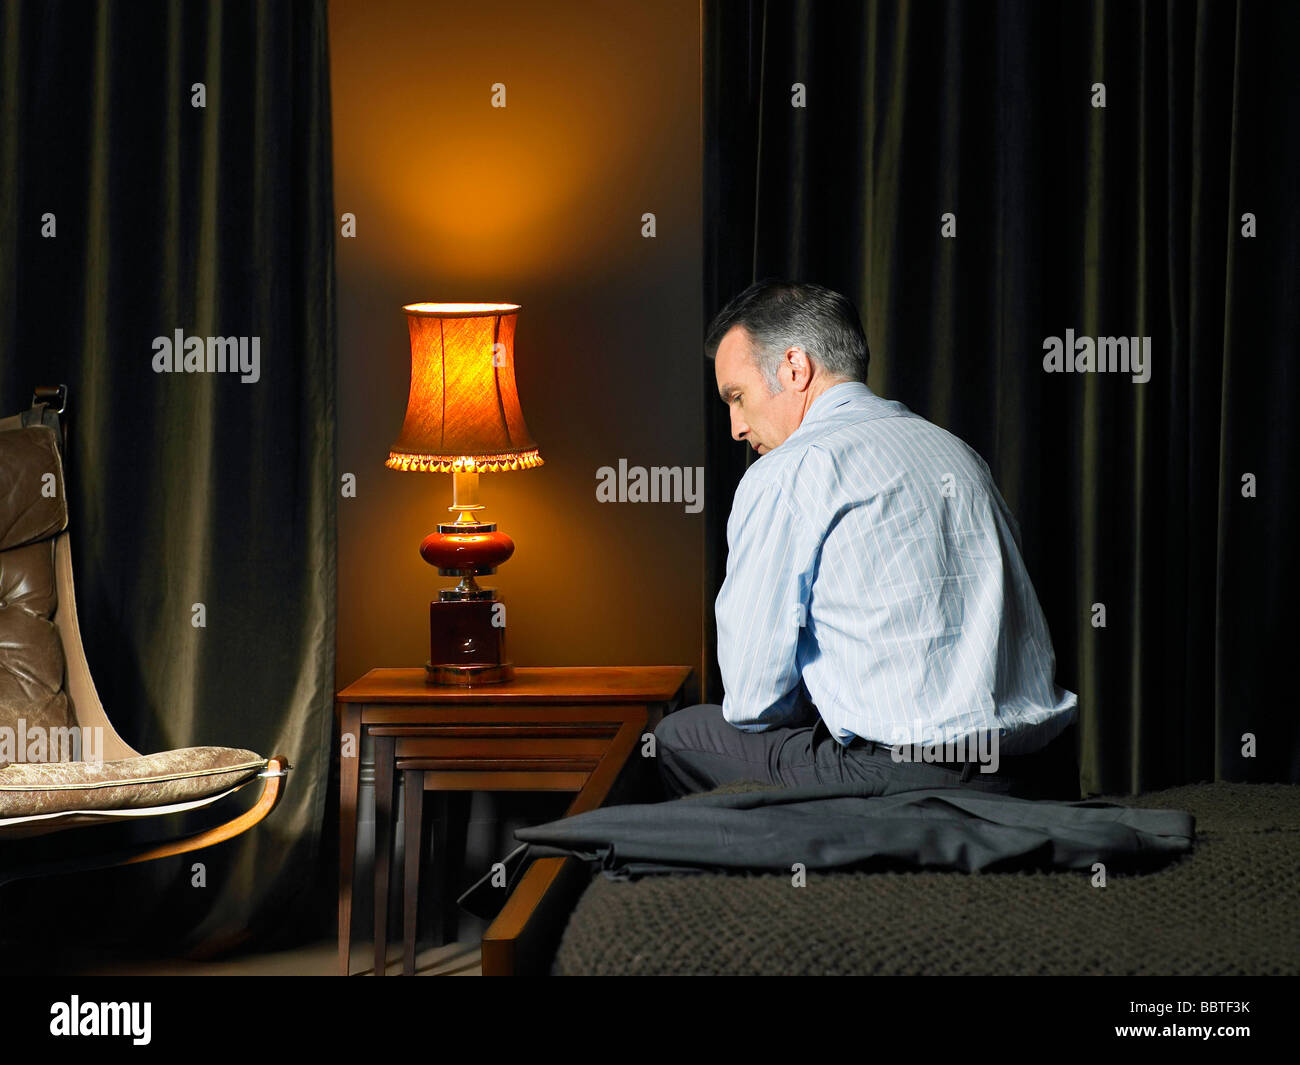 Man sitting on bed with back to camera Stock Photo